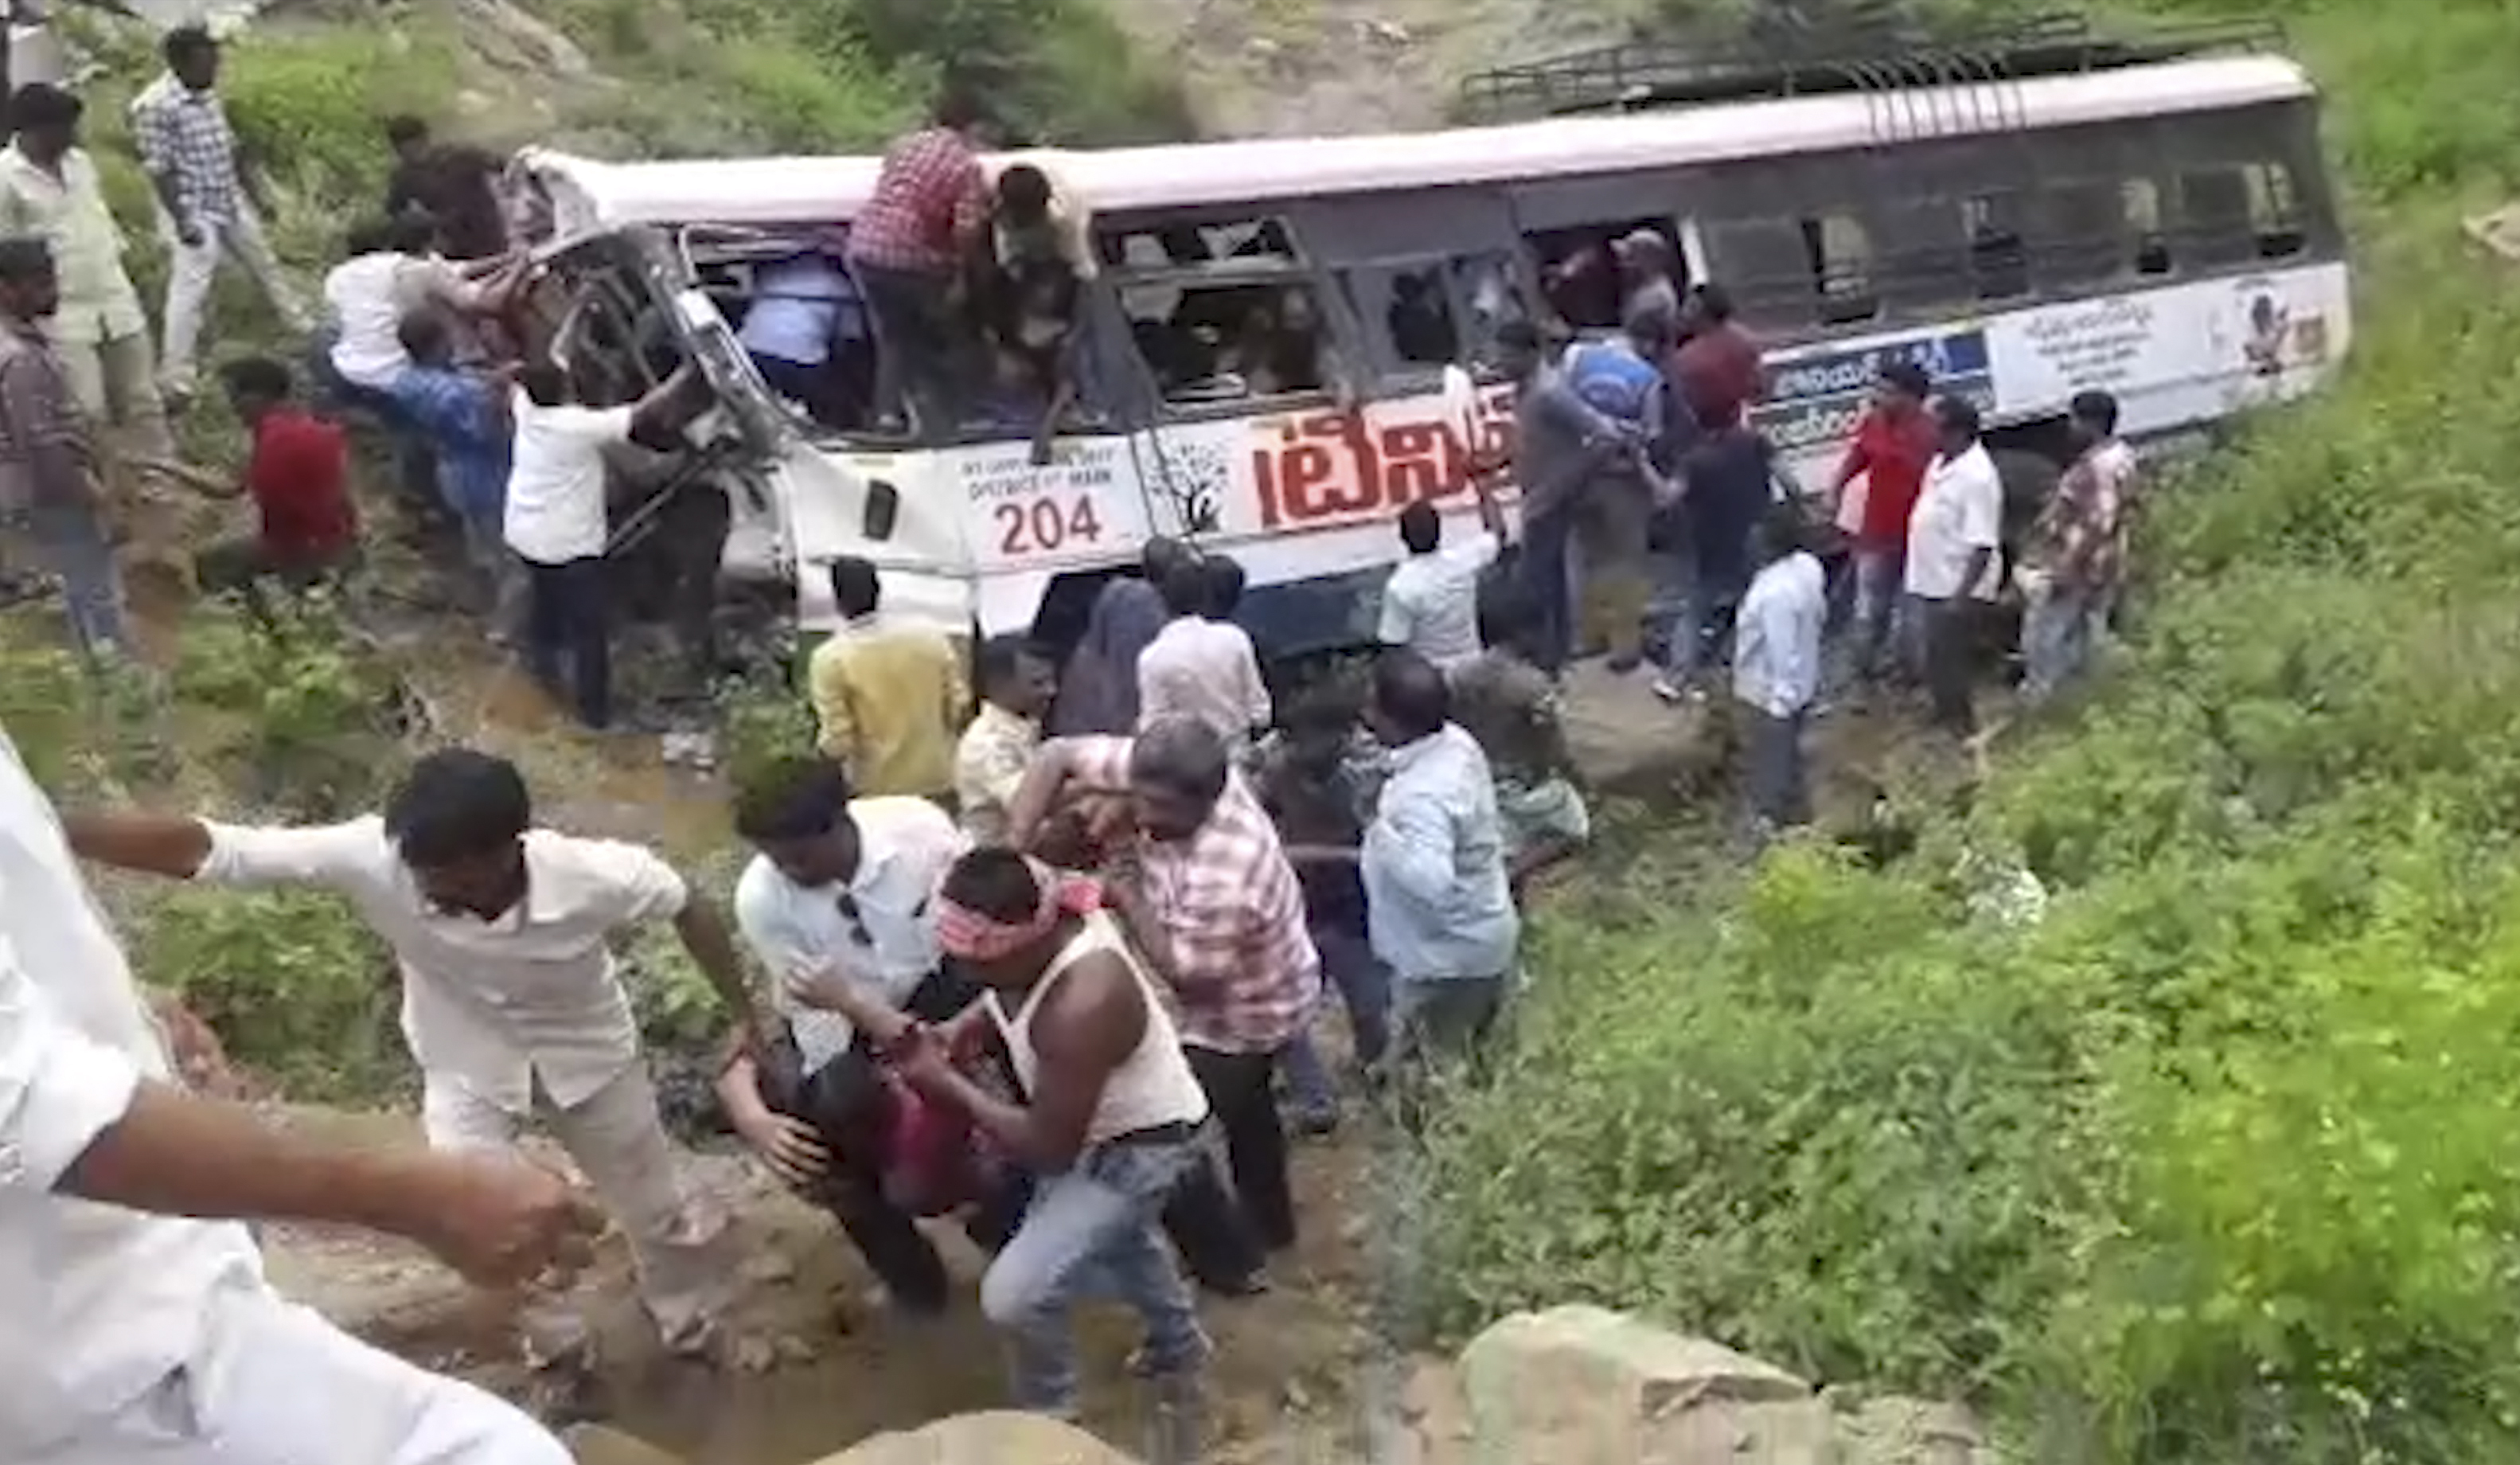 Death toll in India bus accident rises to 46